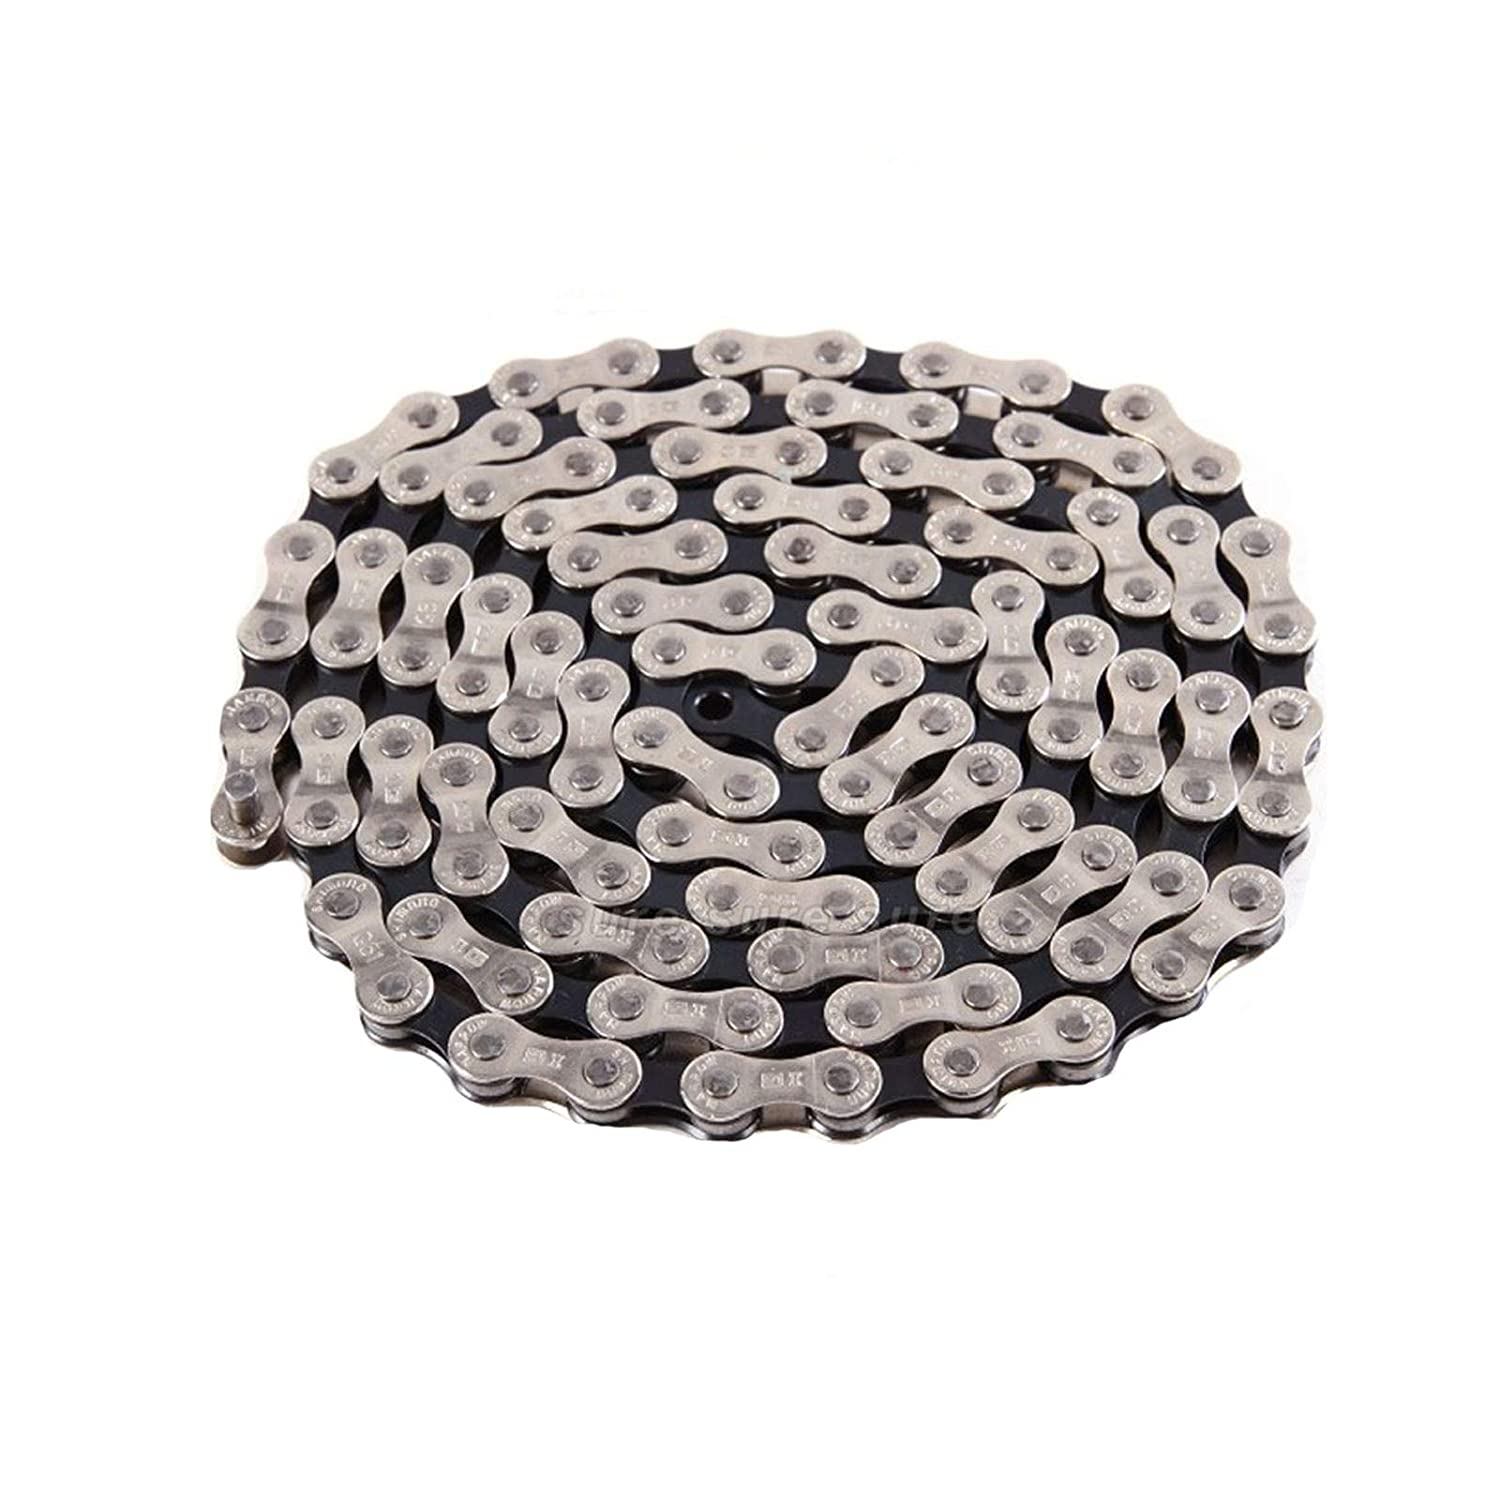 Shimano IG51 6-7-8 Speed Steel Chain for Bike Cycle Bicycle Cycling